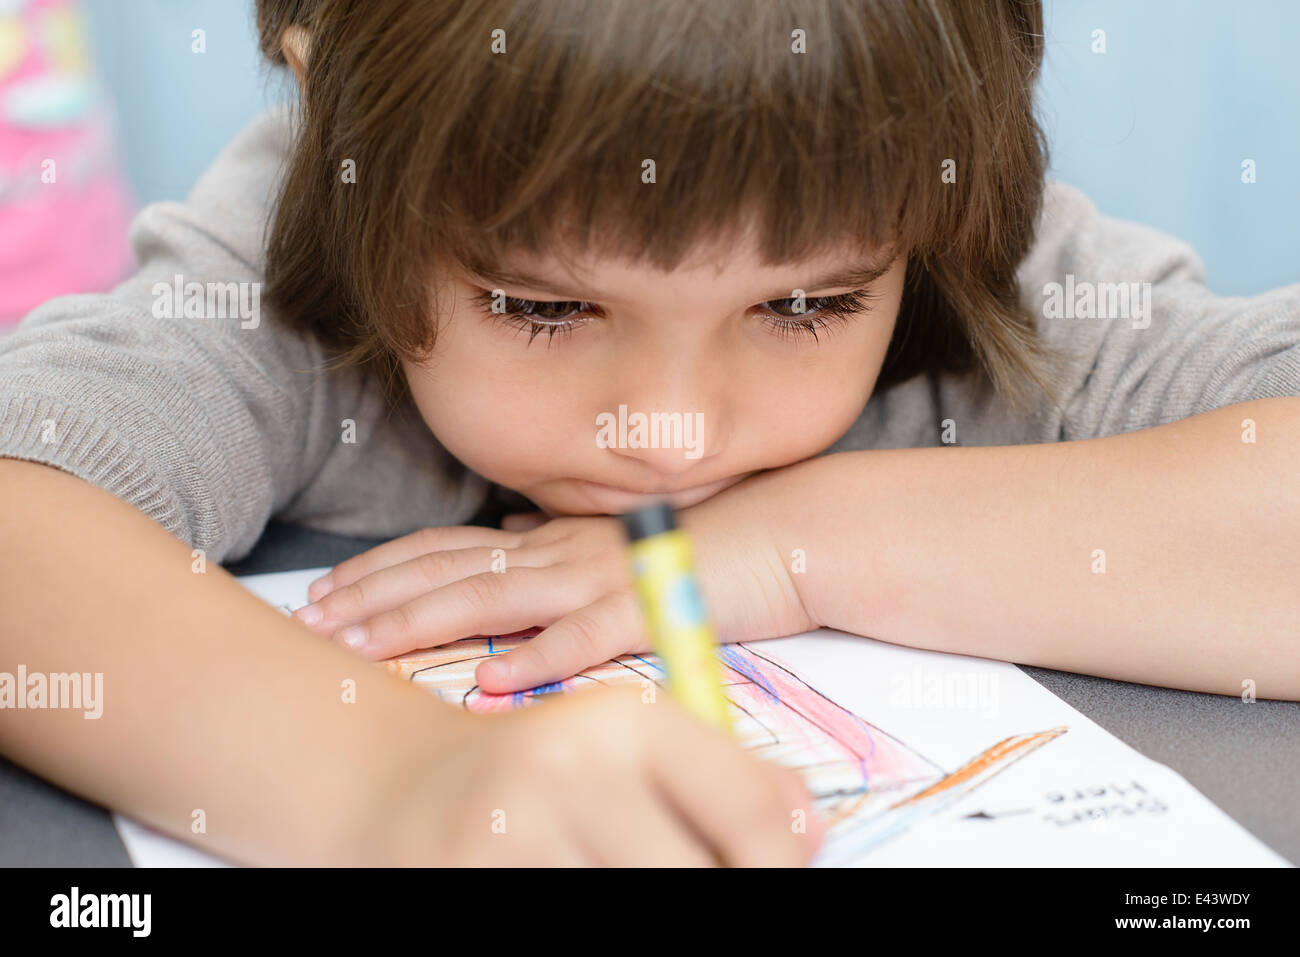 Lonely Girl drawing at kindergarten - Stock Image